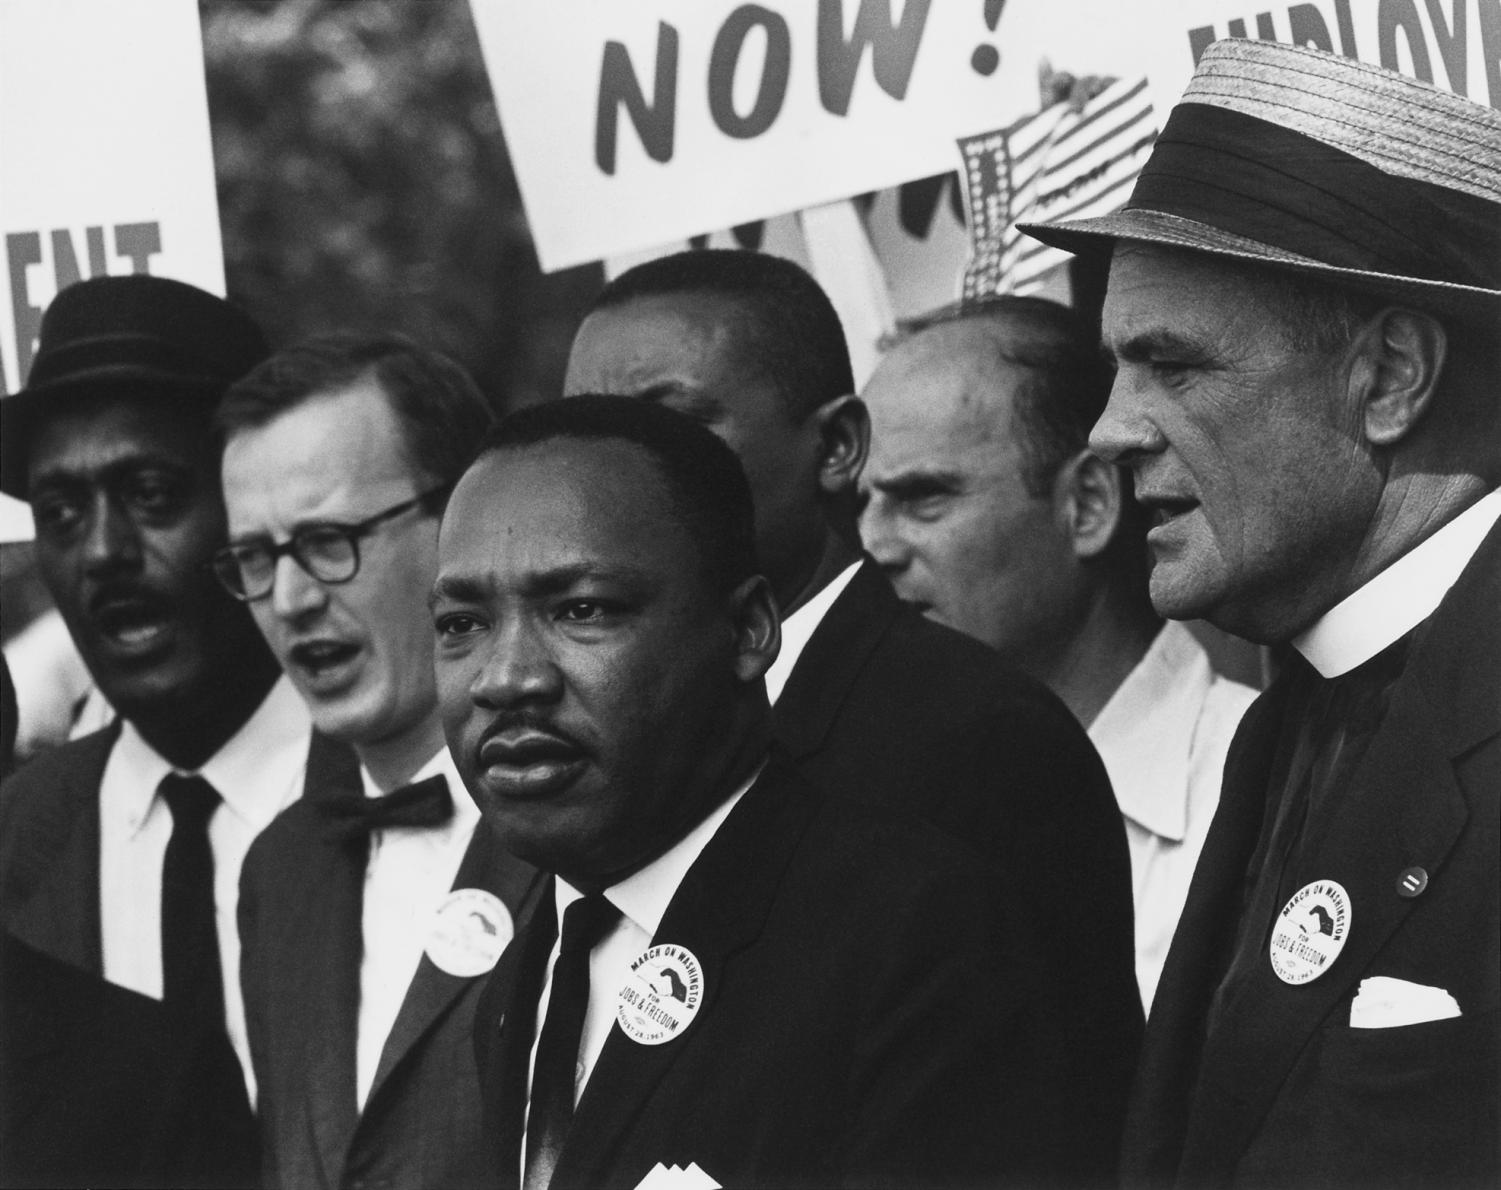 Photo via https://en.m.wikipedia.org/wiki/Martin_Luther_King_Jr. Under the Creative Commons Lisence